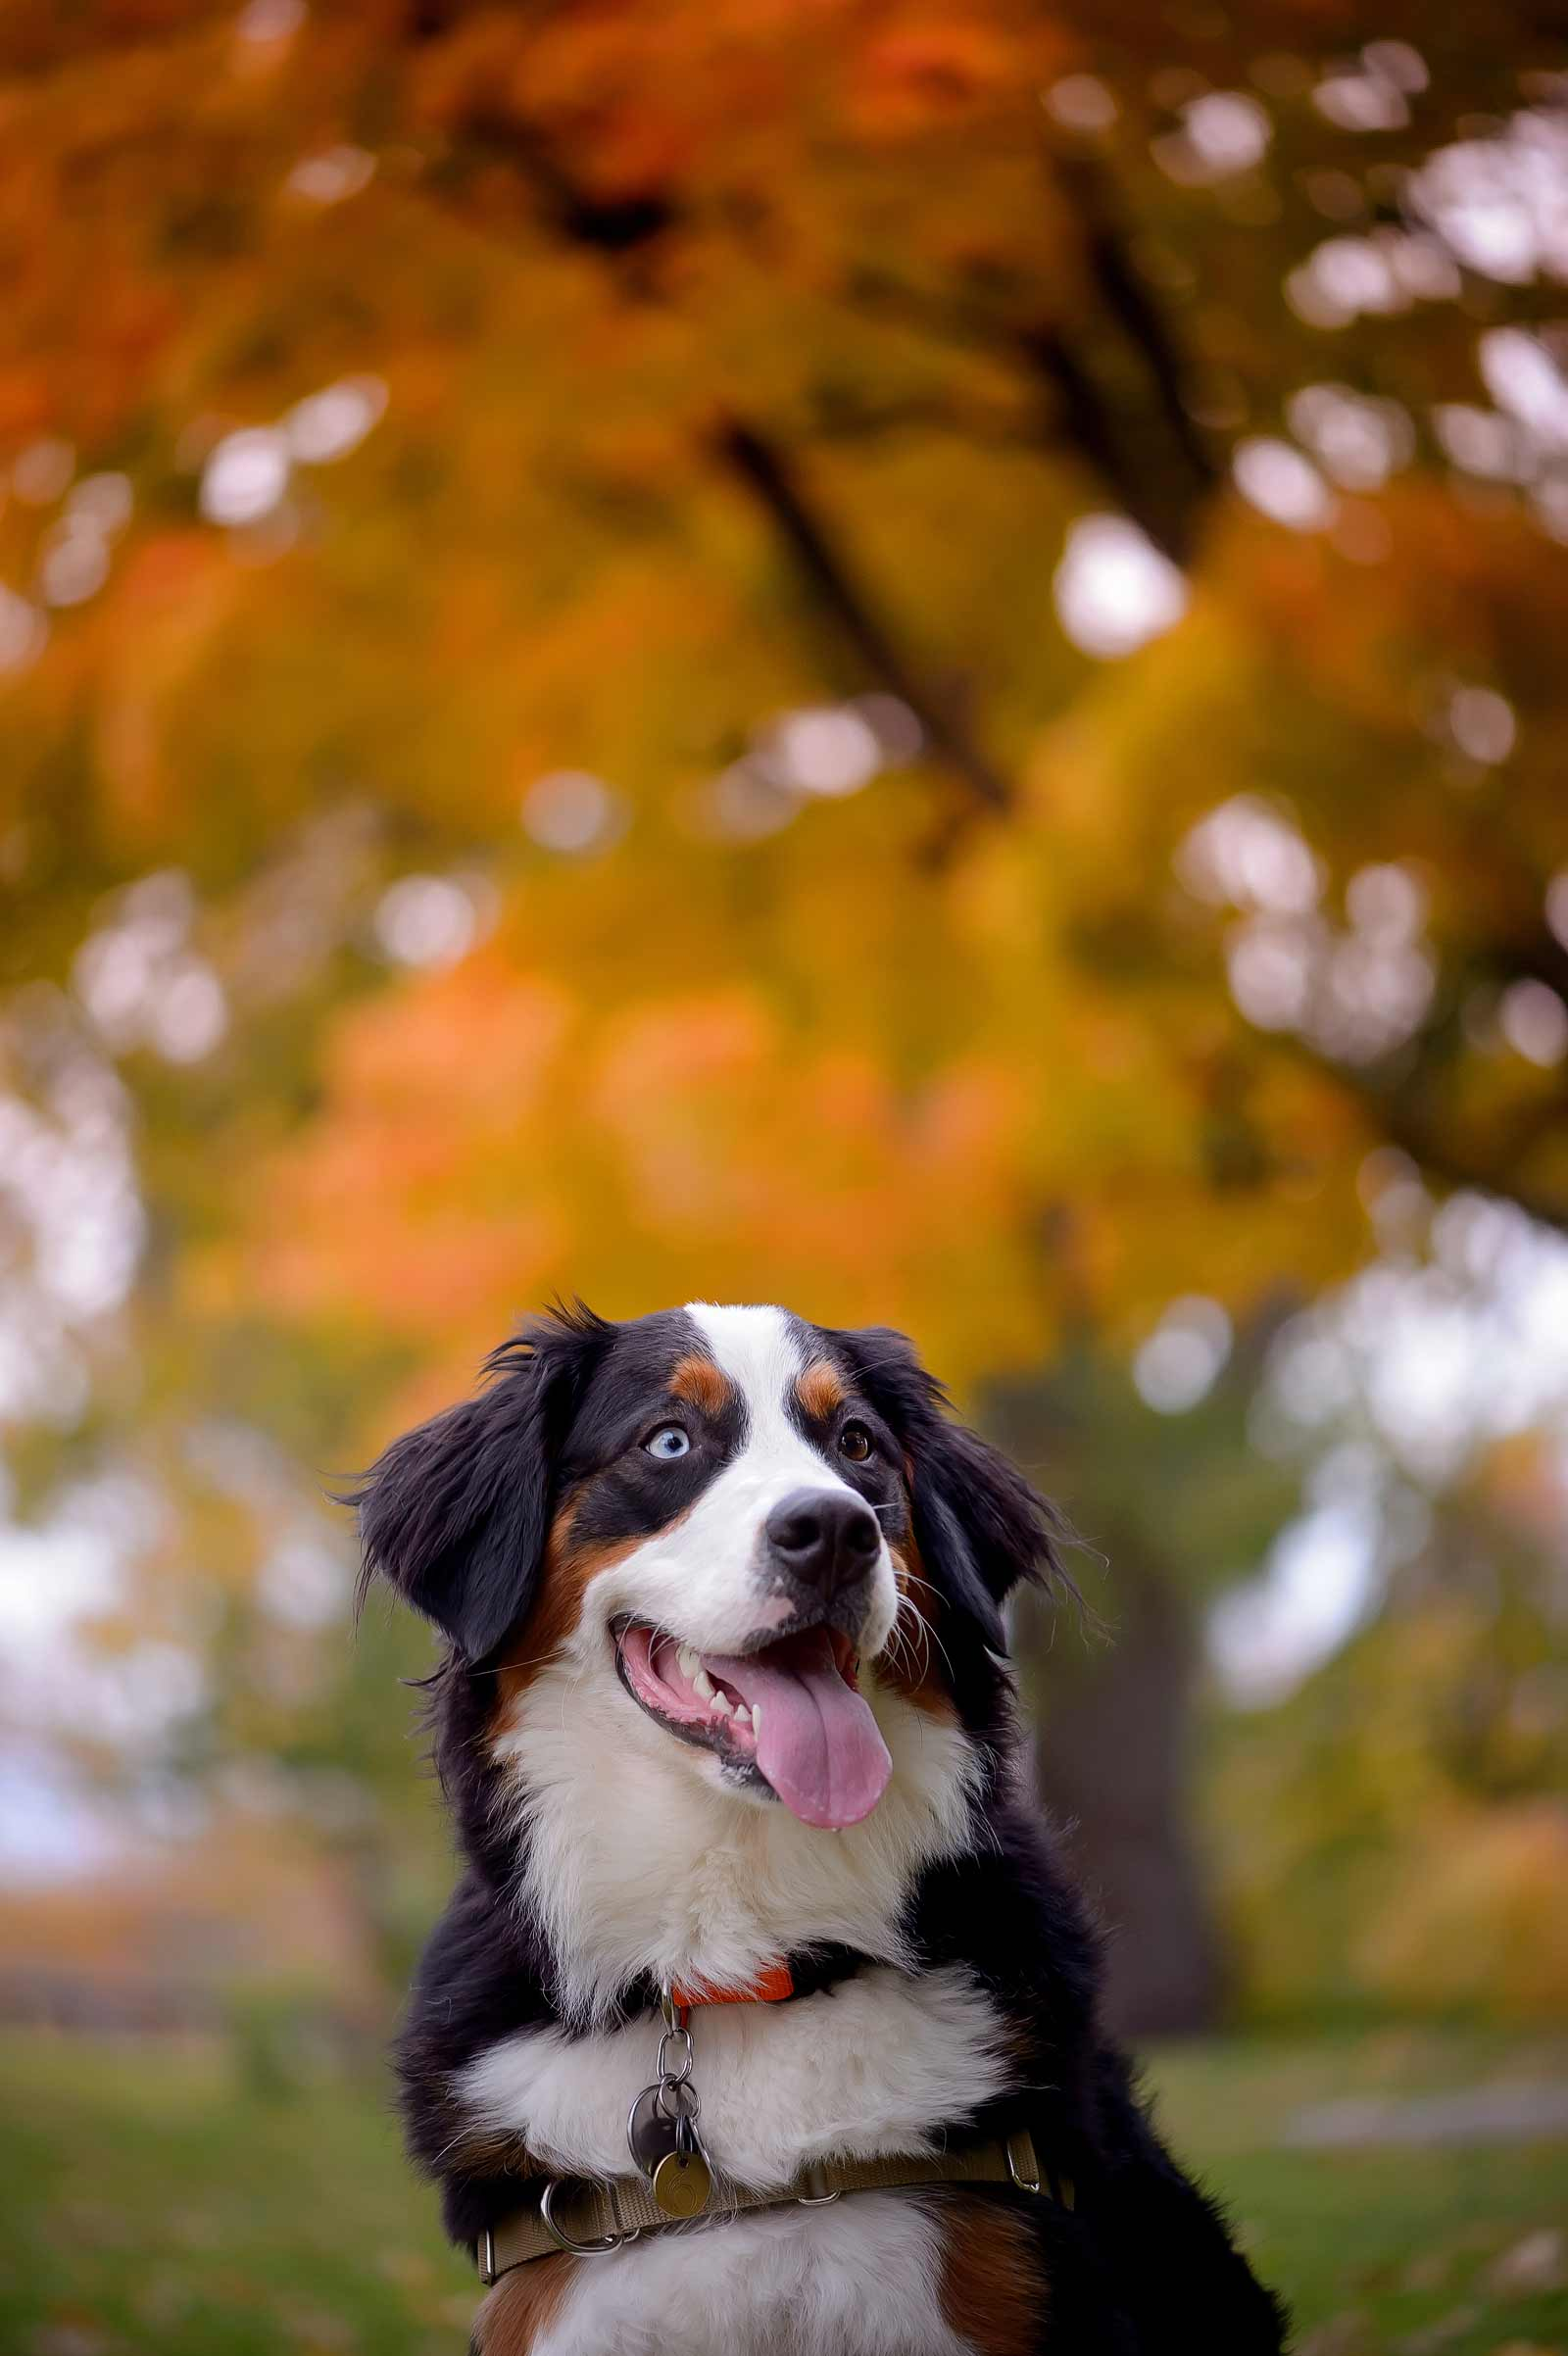 Ottawa Dog Photographer Princess Leia the Bernese mountain dog at Lemieux Island in the fall with the trees